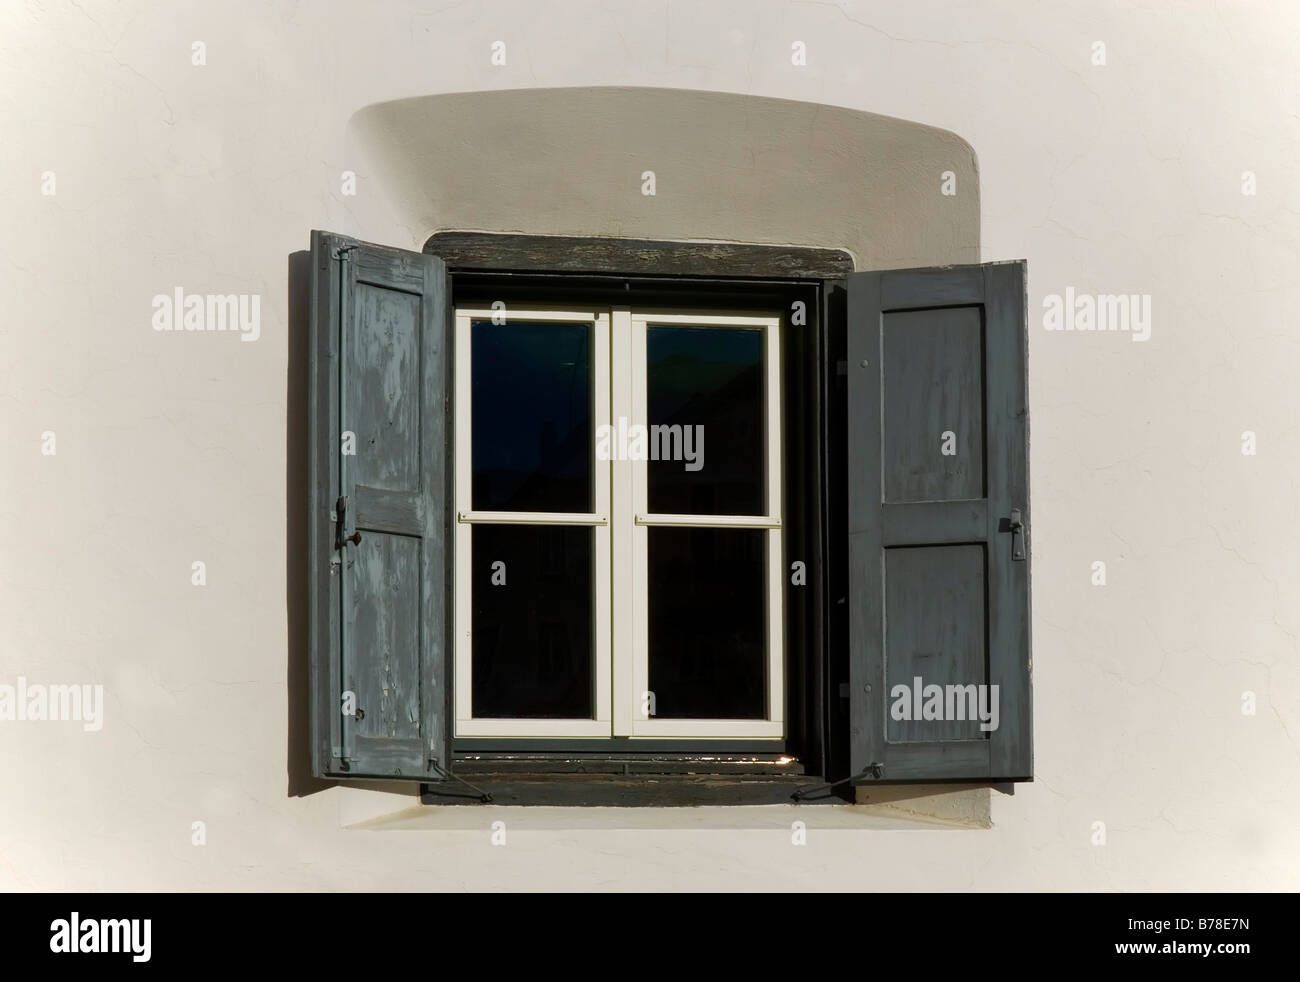 Window with window shutters, Sent, Lower Engadin, Canton of Graubuenden, Switzerland, Europe - Stock Image